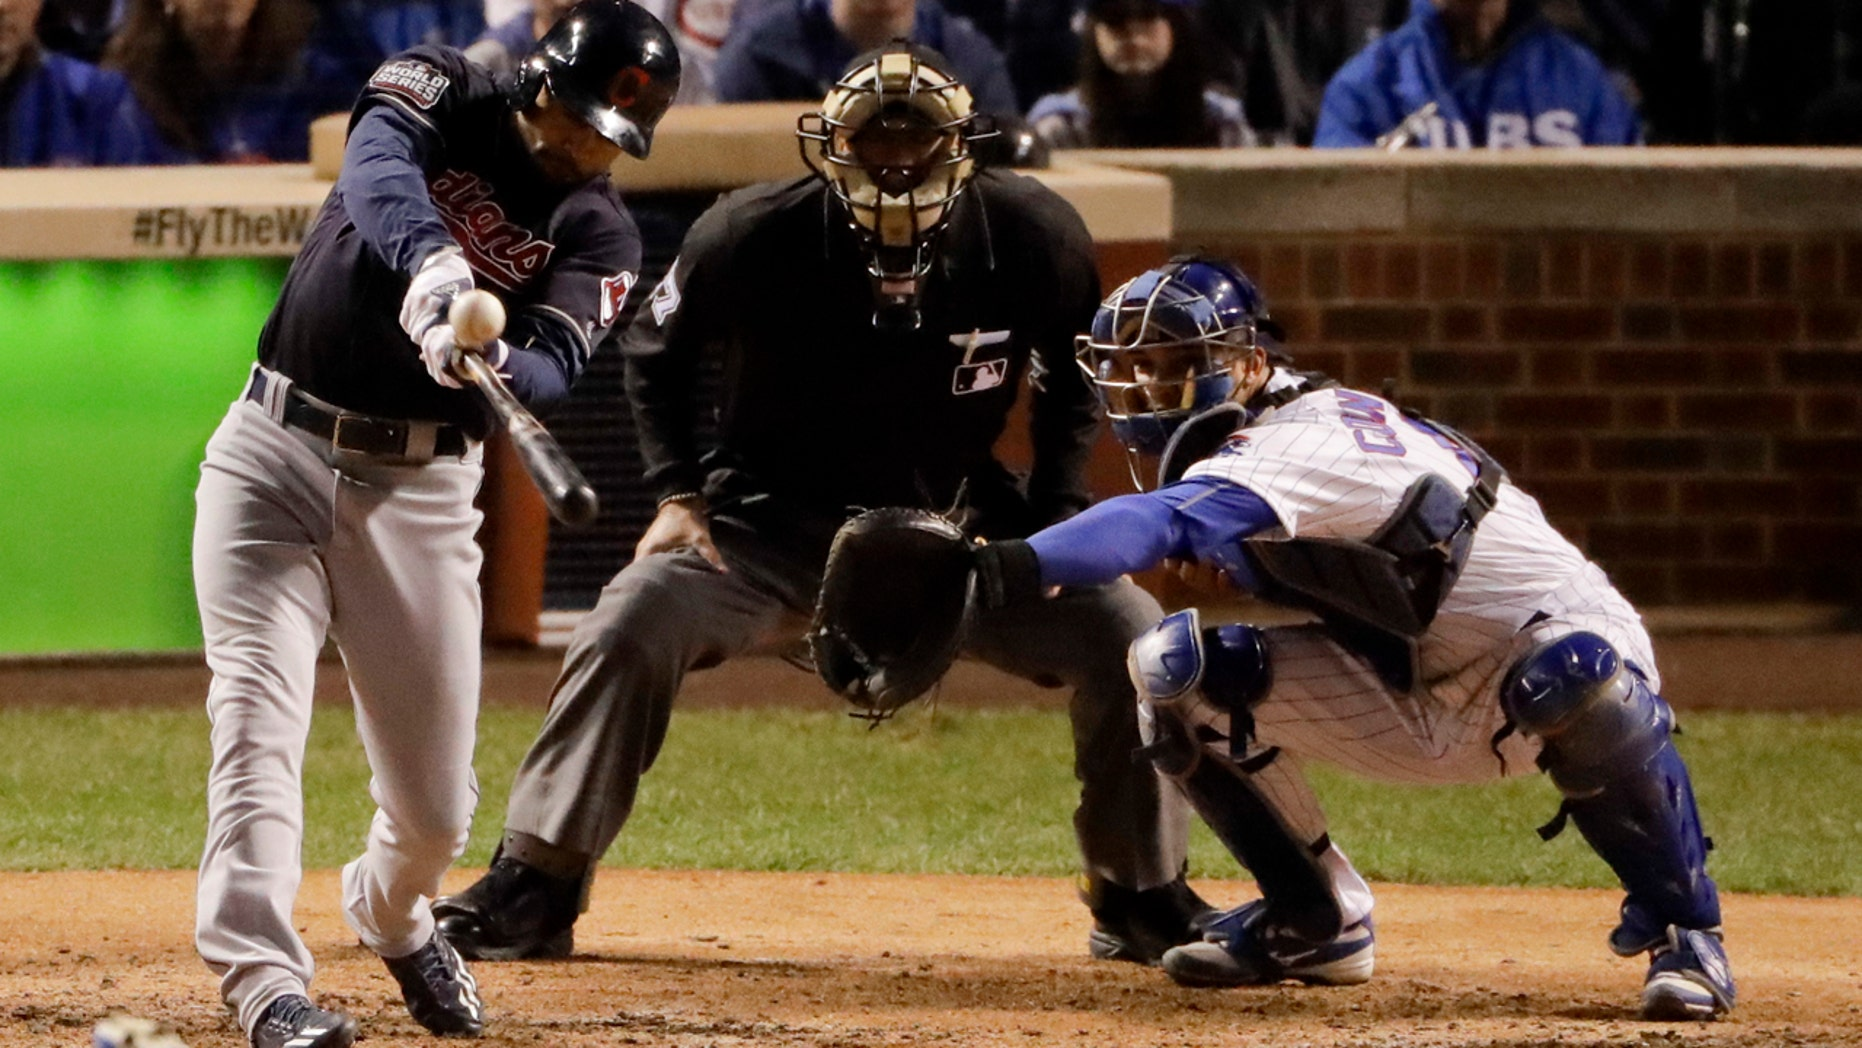 Oct. 28, 2016: Coco Crisp of the Cleveland Indians hits a RBI-single against the Chicago Cubs during the seventh inning of Game 3 of the World Series in Chicago.